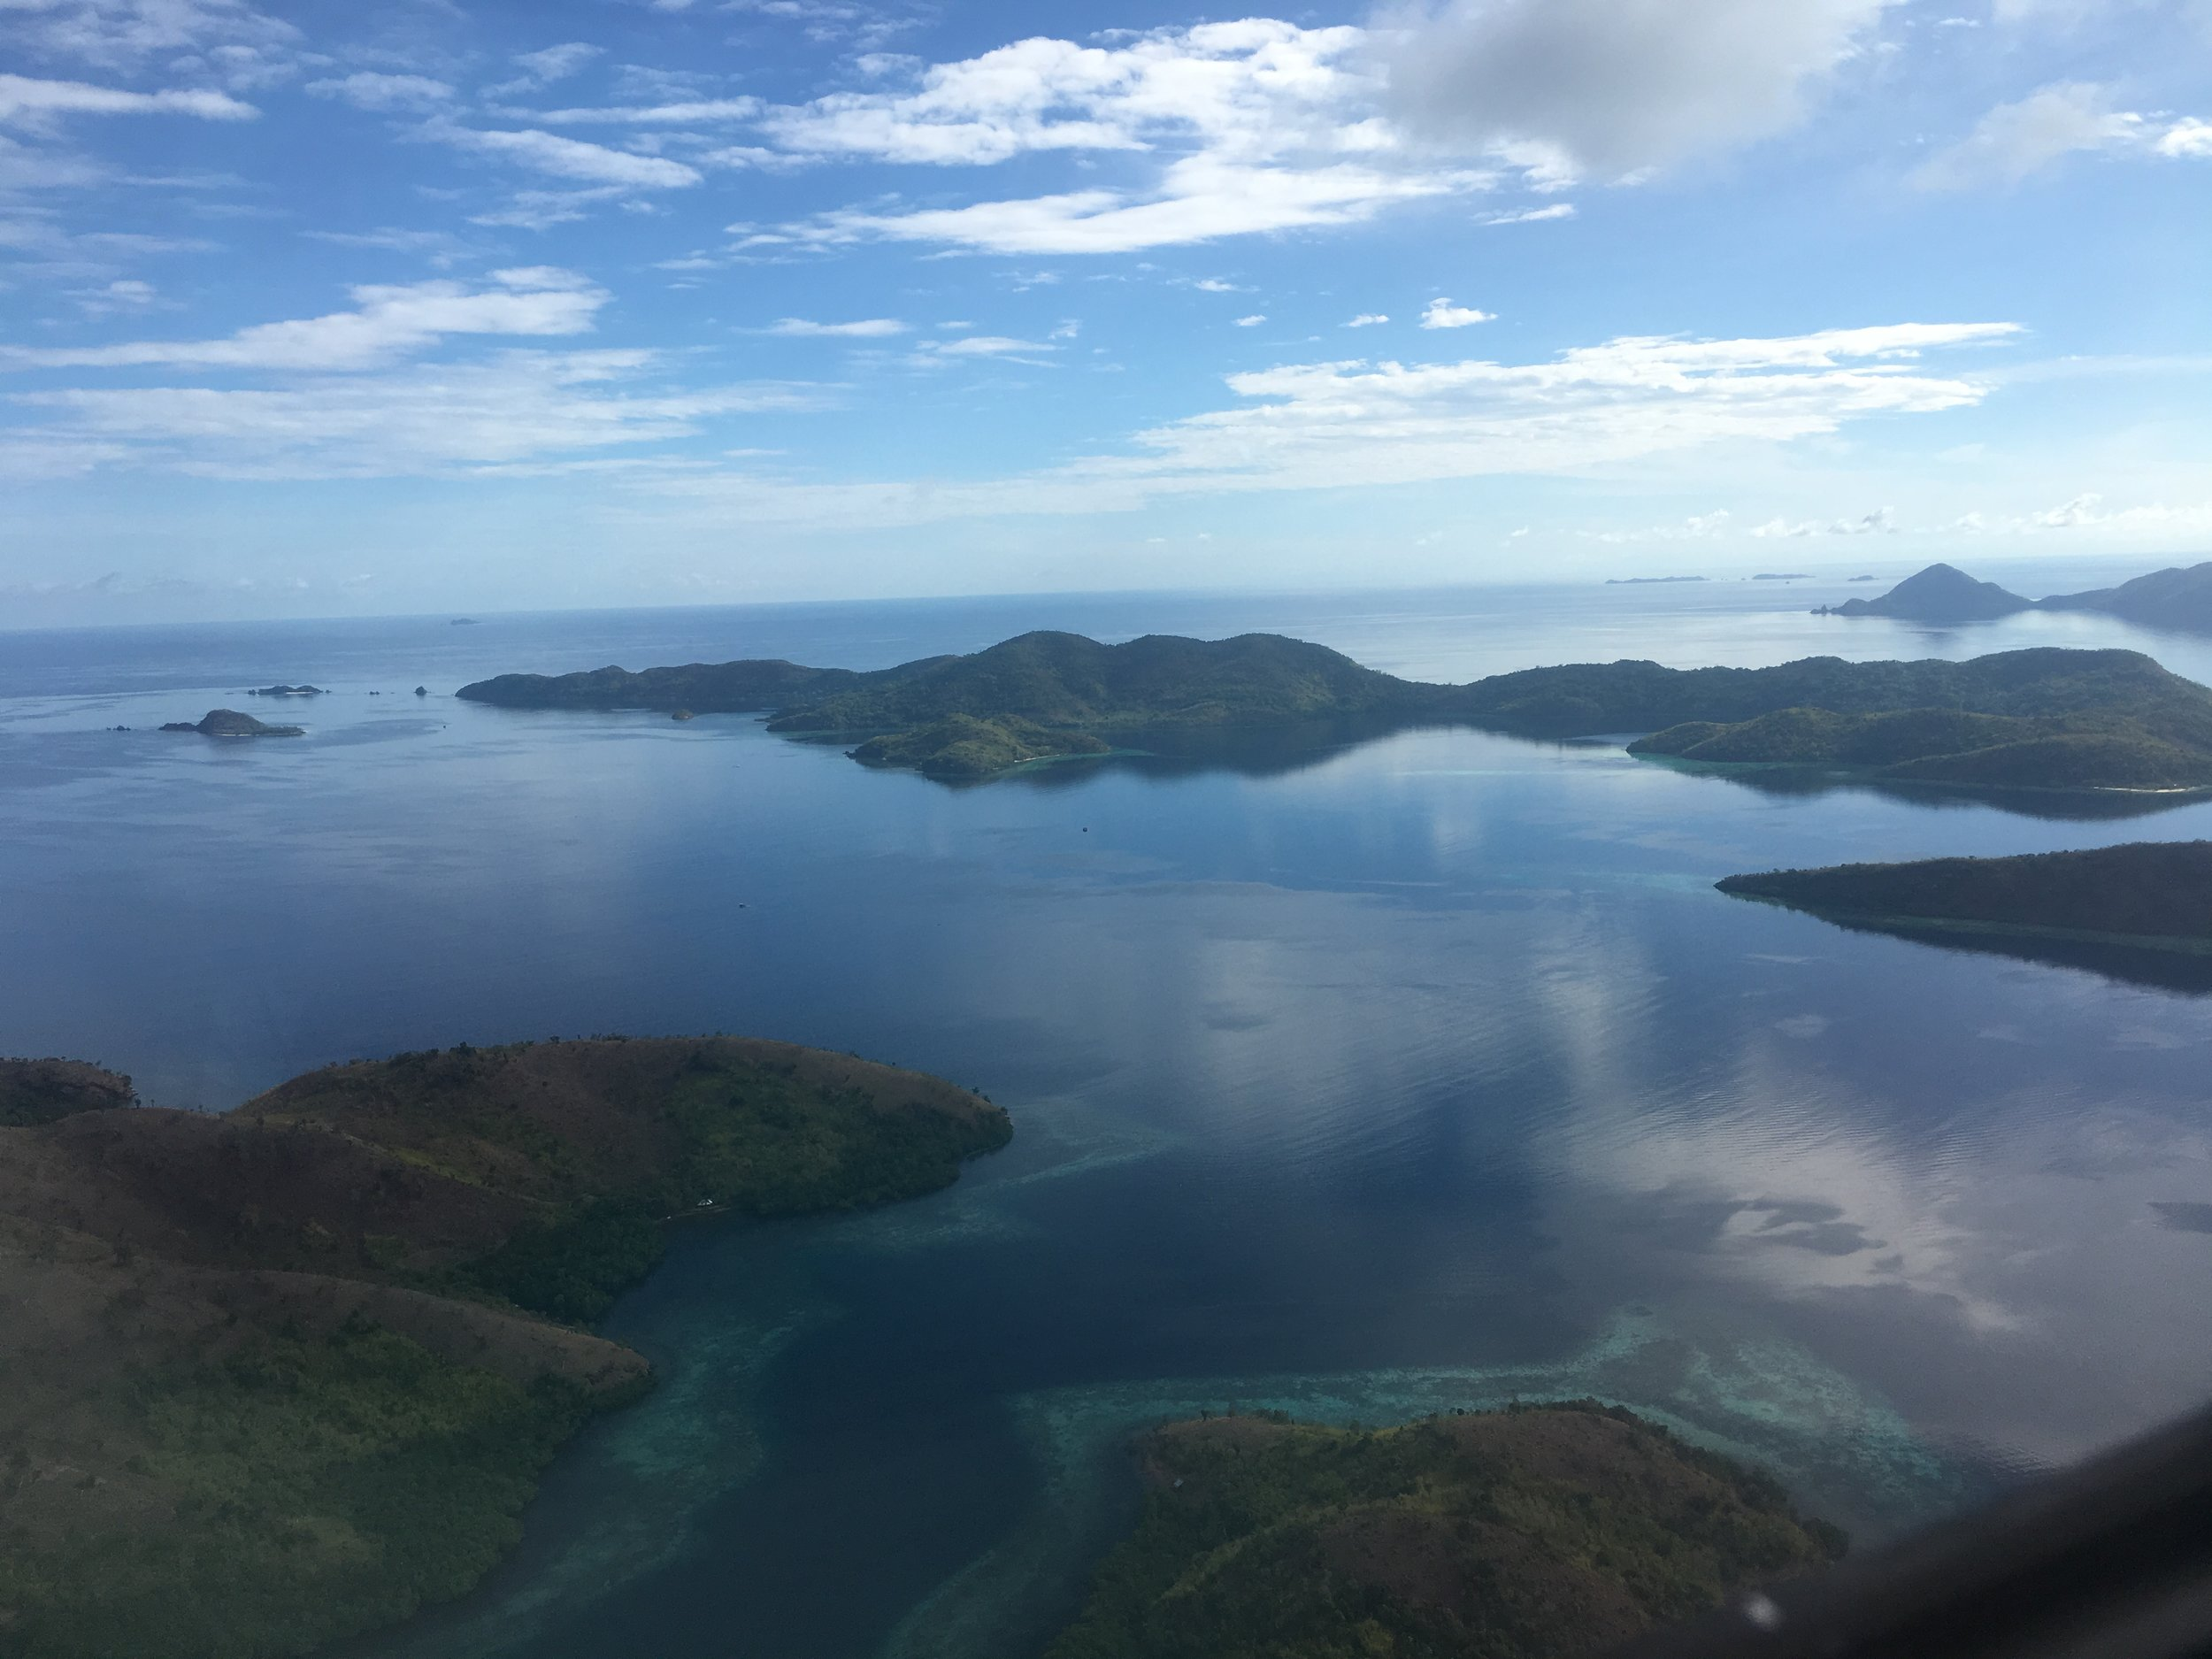 View from my plane ride to Manila